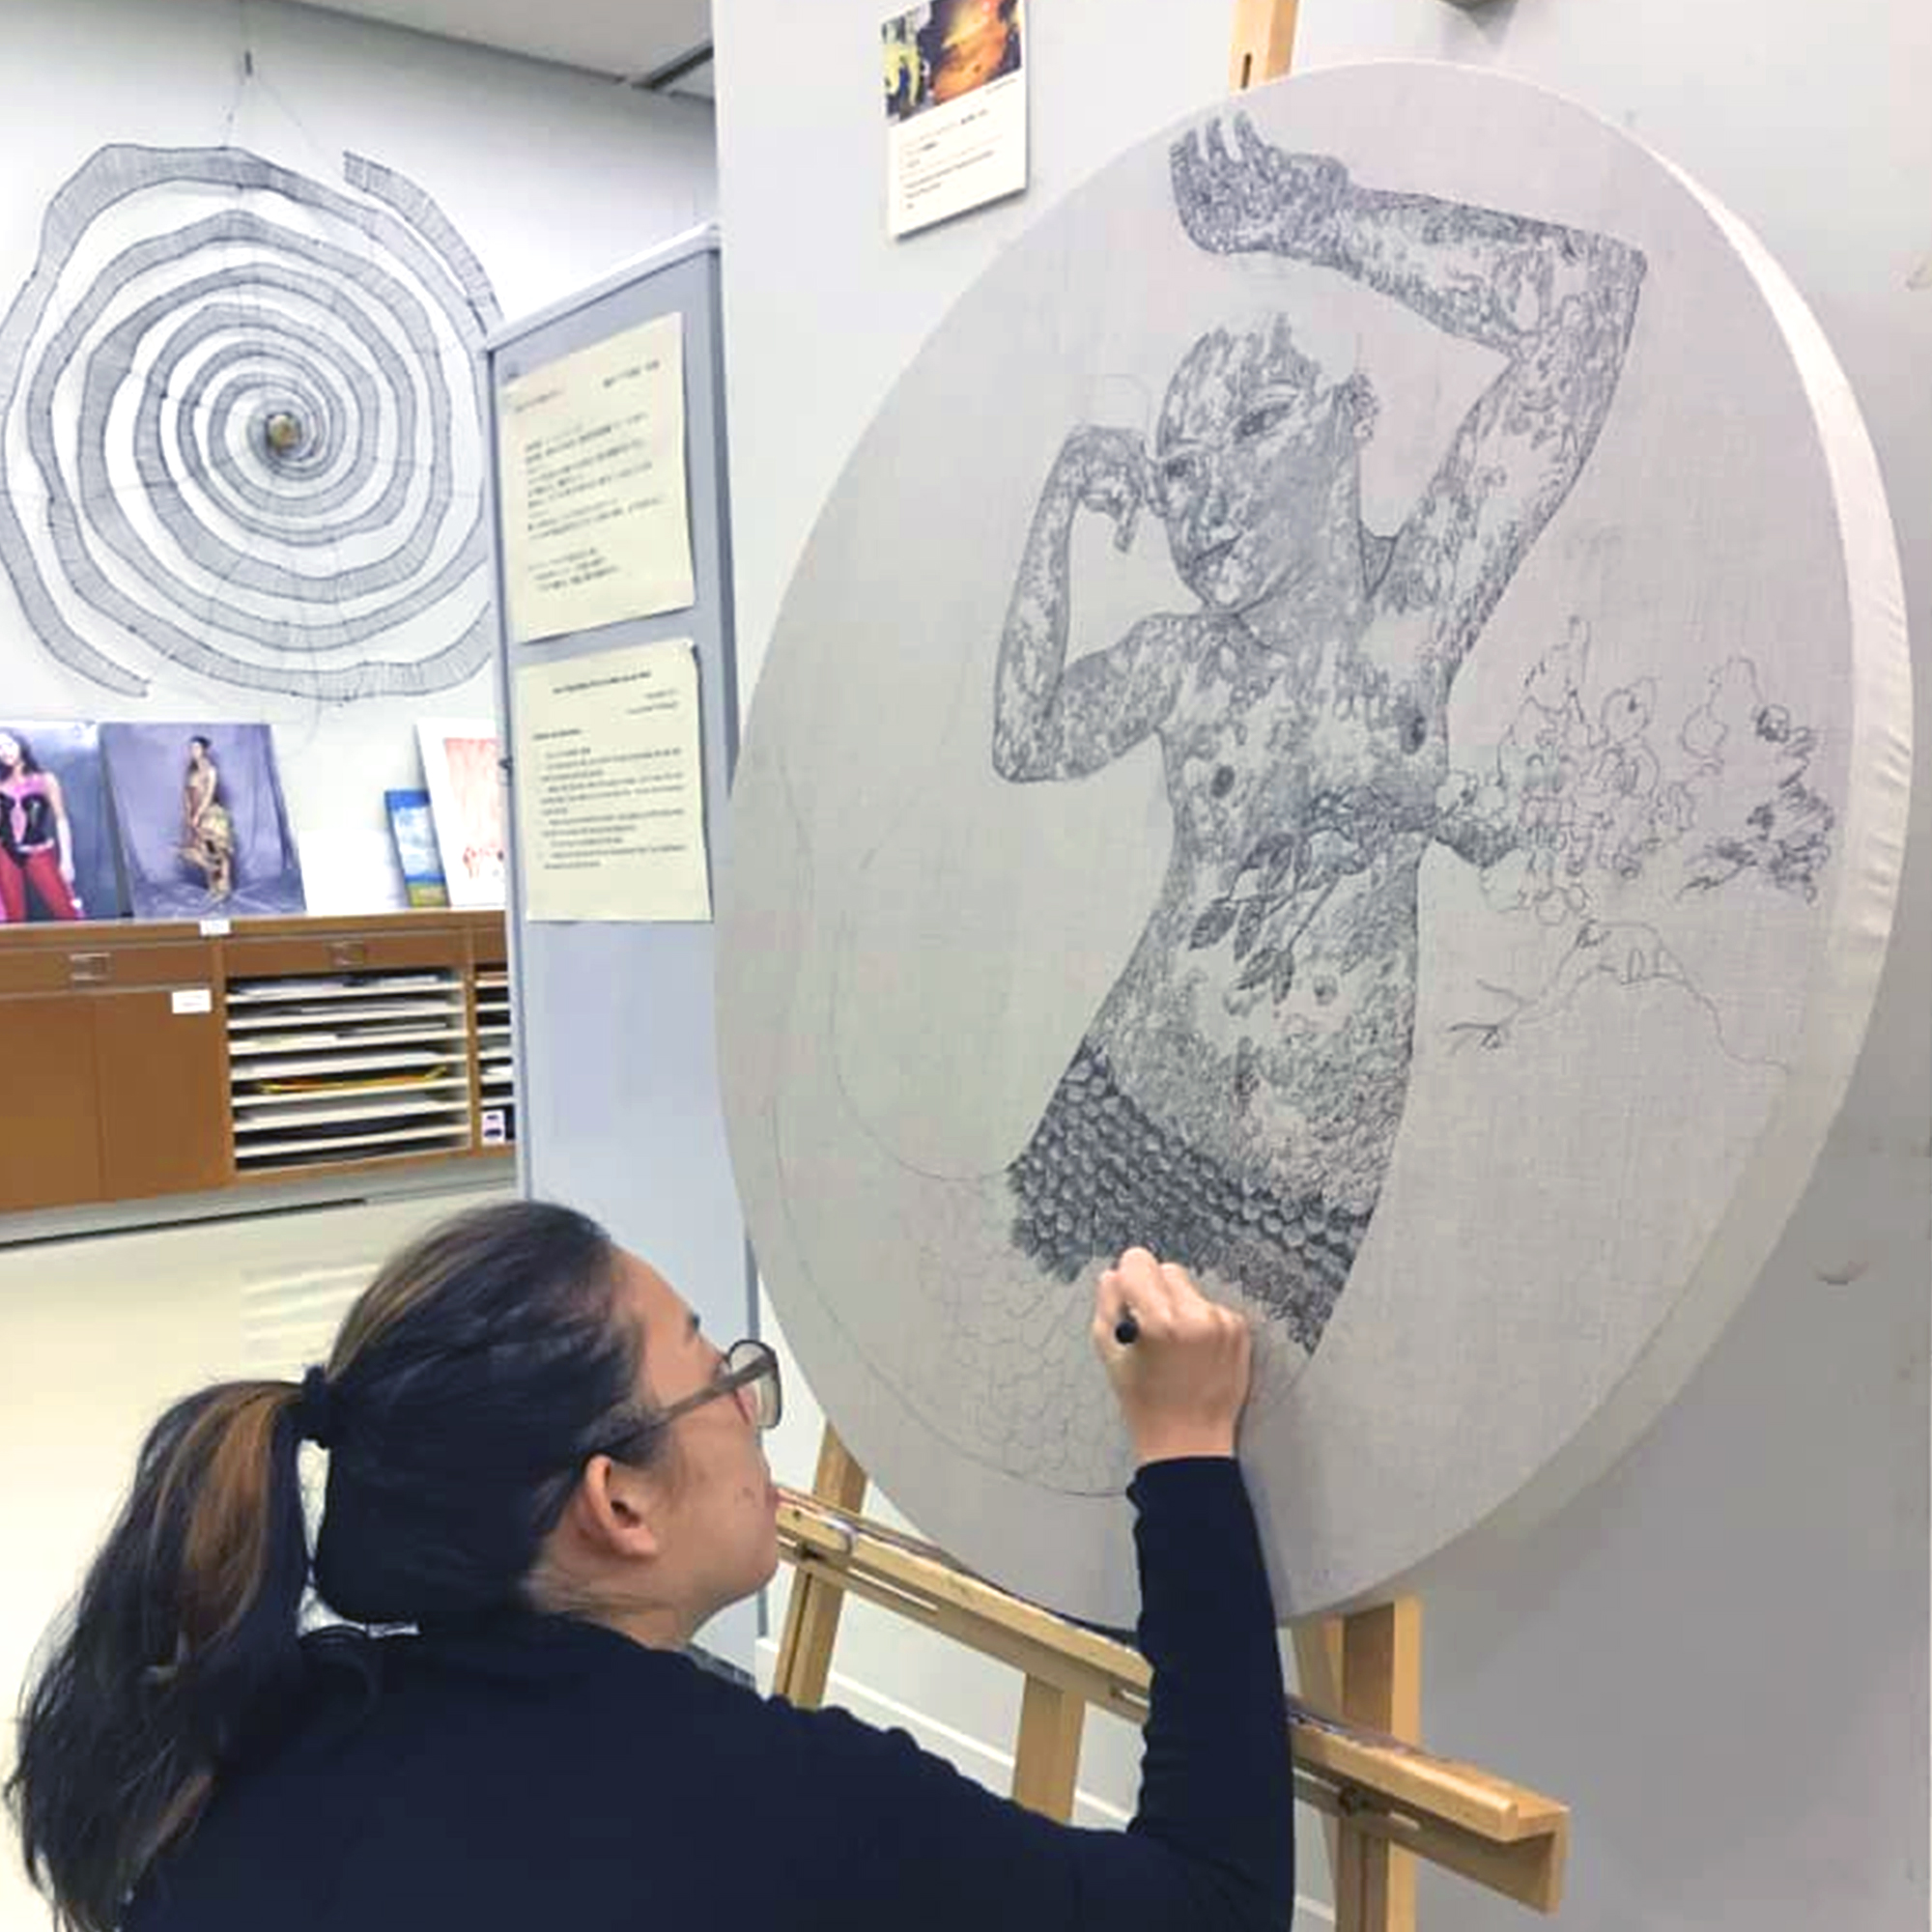 Ms Cheong Kiet Cheng, winner of the 2018 UOB Painting of the Year (Malaysia) Competition and 2018 UOB-Fukuoka Asian Art Museum's (FAAM) Artists Residency Programme completing an artwork during her residency programme at the FAAM, Japan.  Source:  UOB